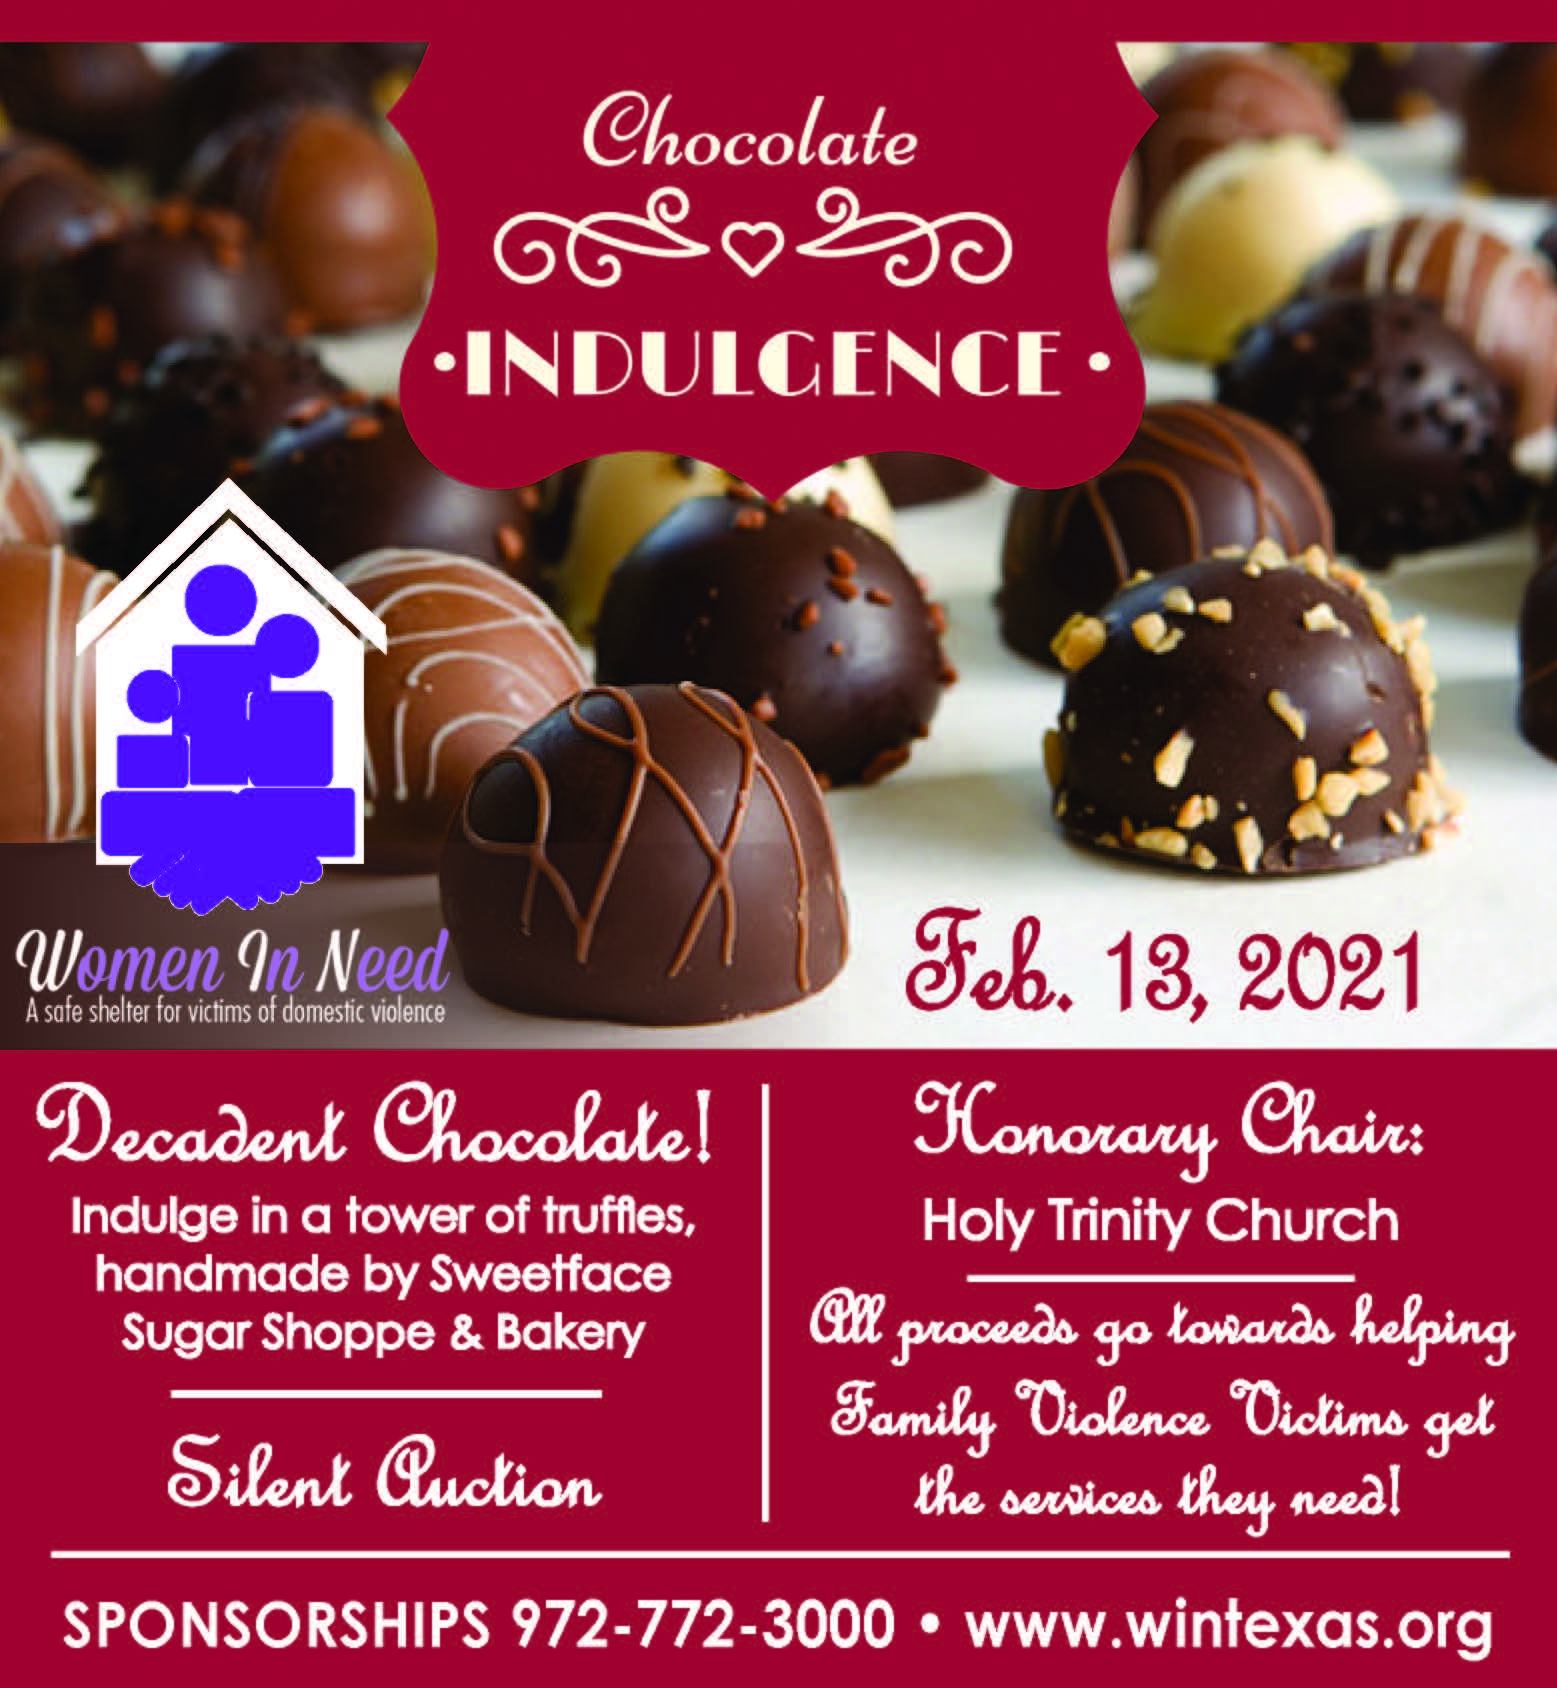 Date set for 8th Annual Chocolate Indulgence fundraiser benefiting Women in Need